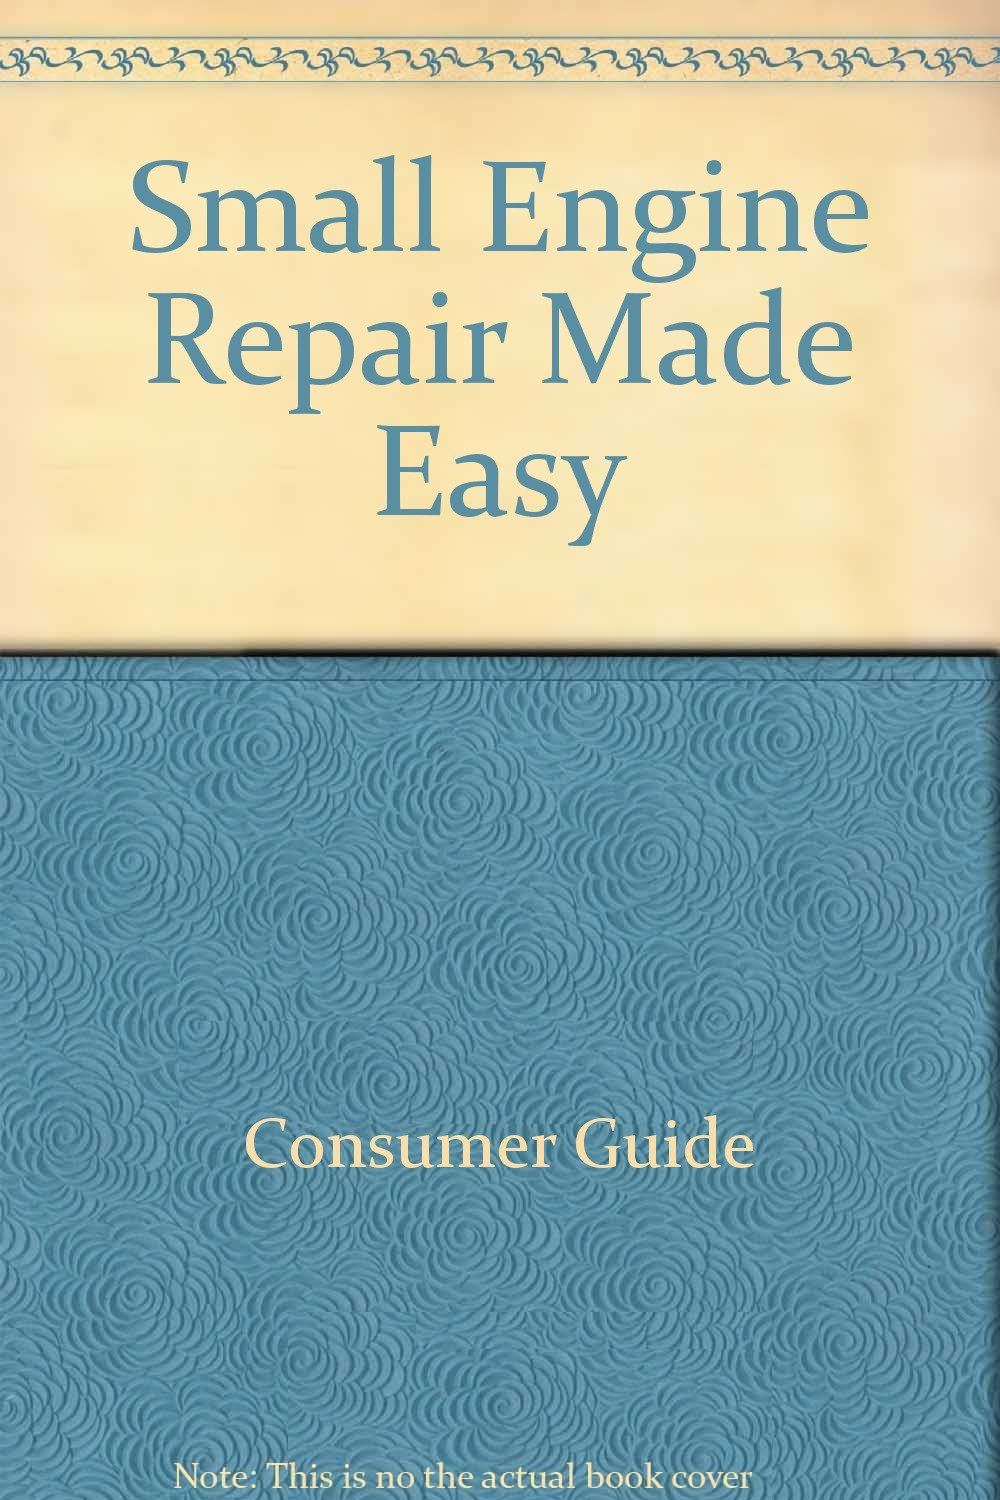 Small Engine Repair Made Easy